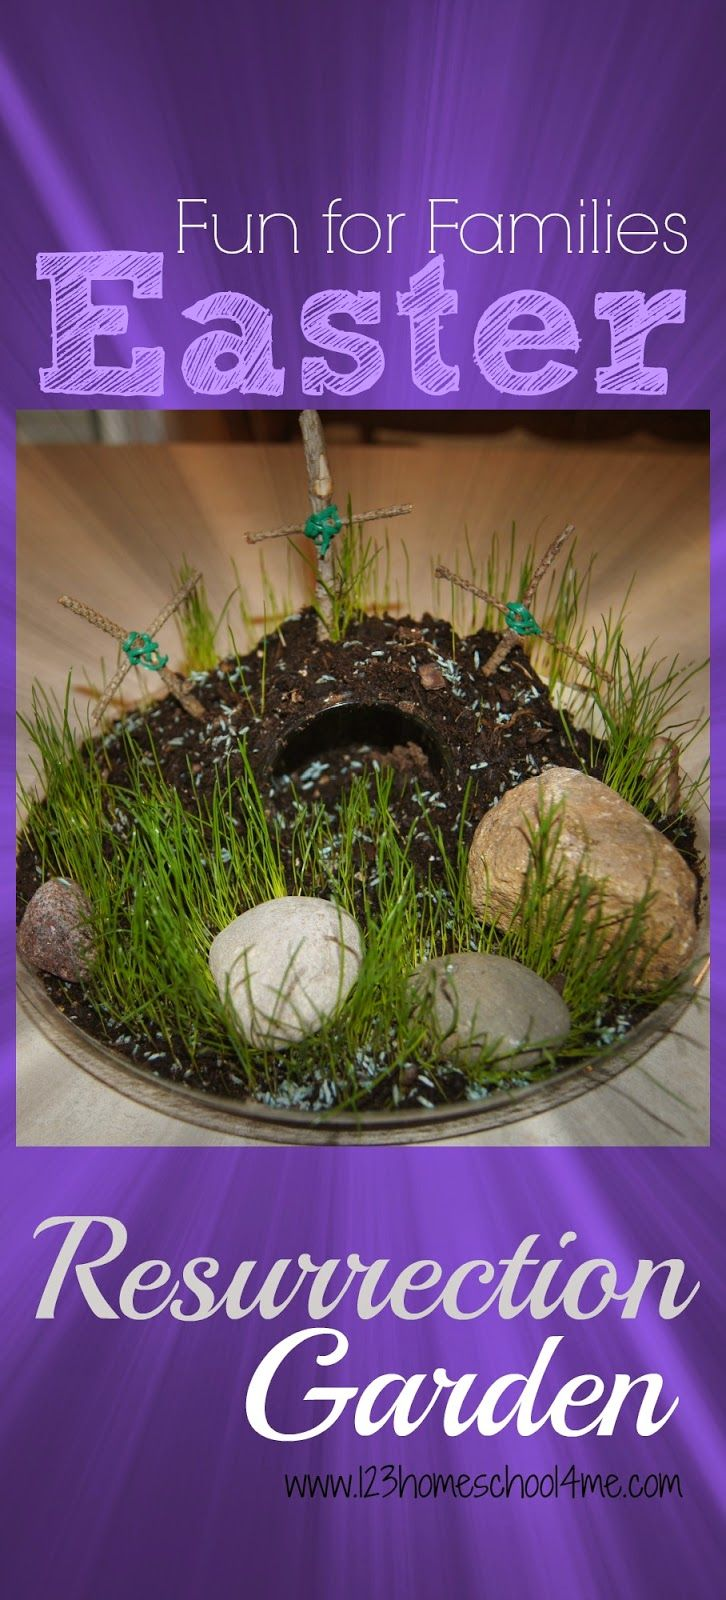 Religious easter yard decorations - Easter Resurrection Garden Is A Fun Meaningful Family Activity Easy To Make With Step